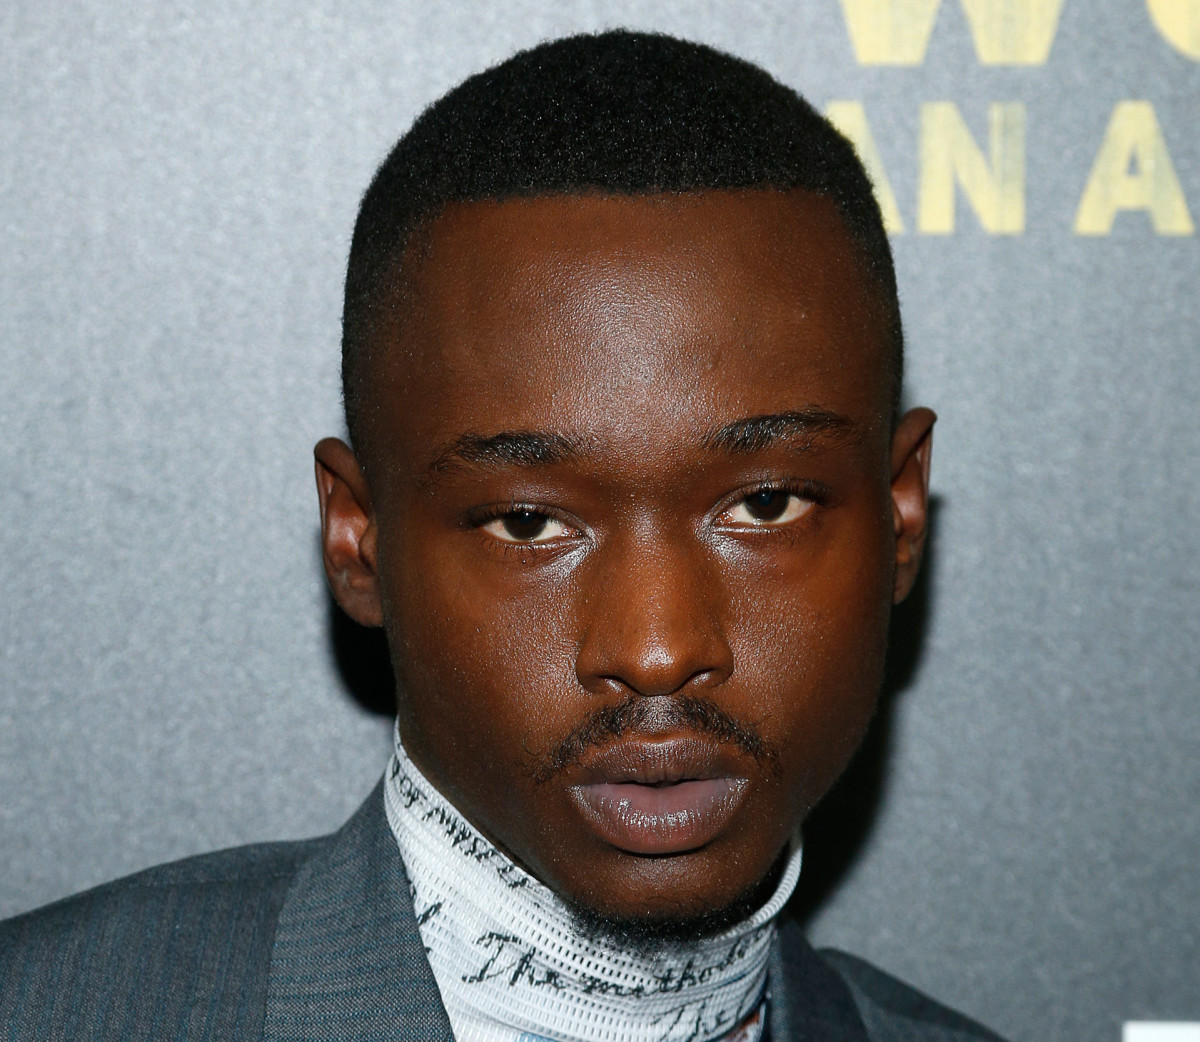 Netflix S All Day And A Night Ashton Sanders On Making The Gritty Drama Complex